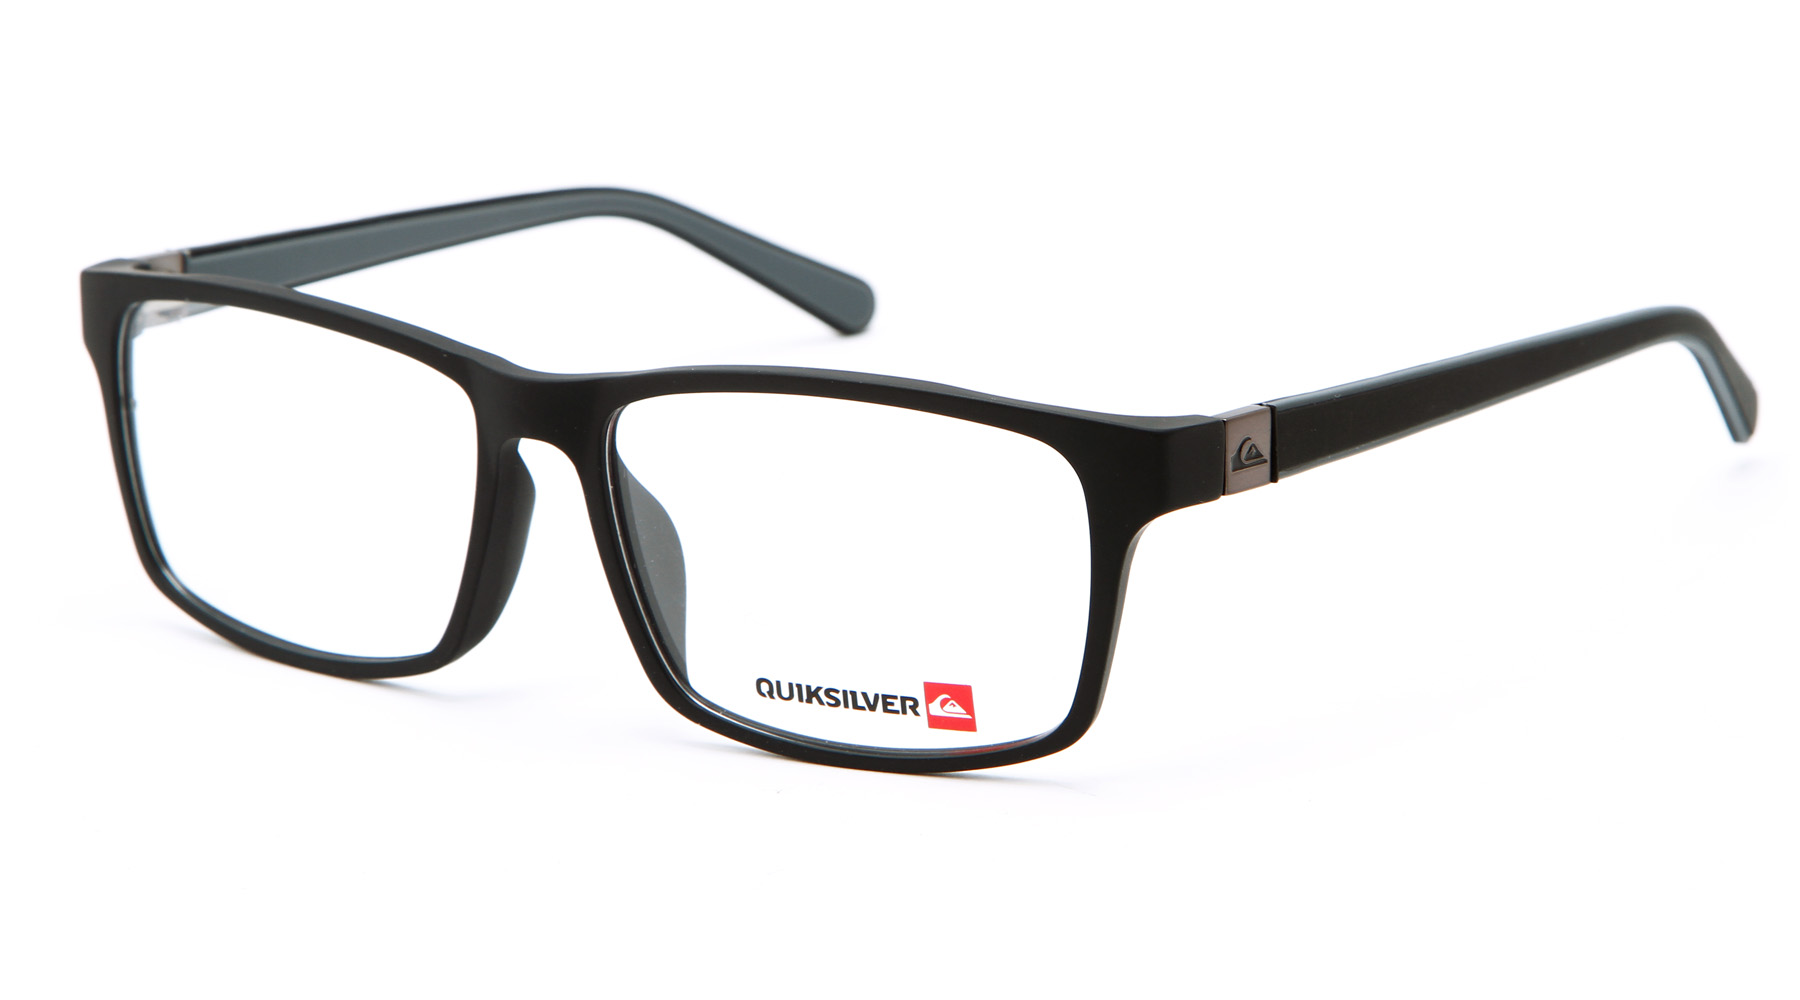 Quiksilver Eyeglass Frames : Quiksilver Men Glasses QS065 Plastic Rectangular Optical ...